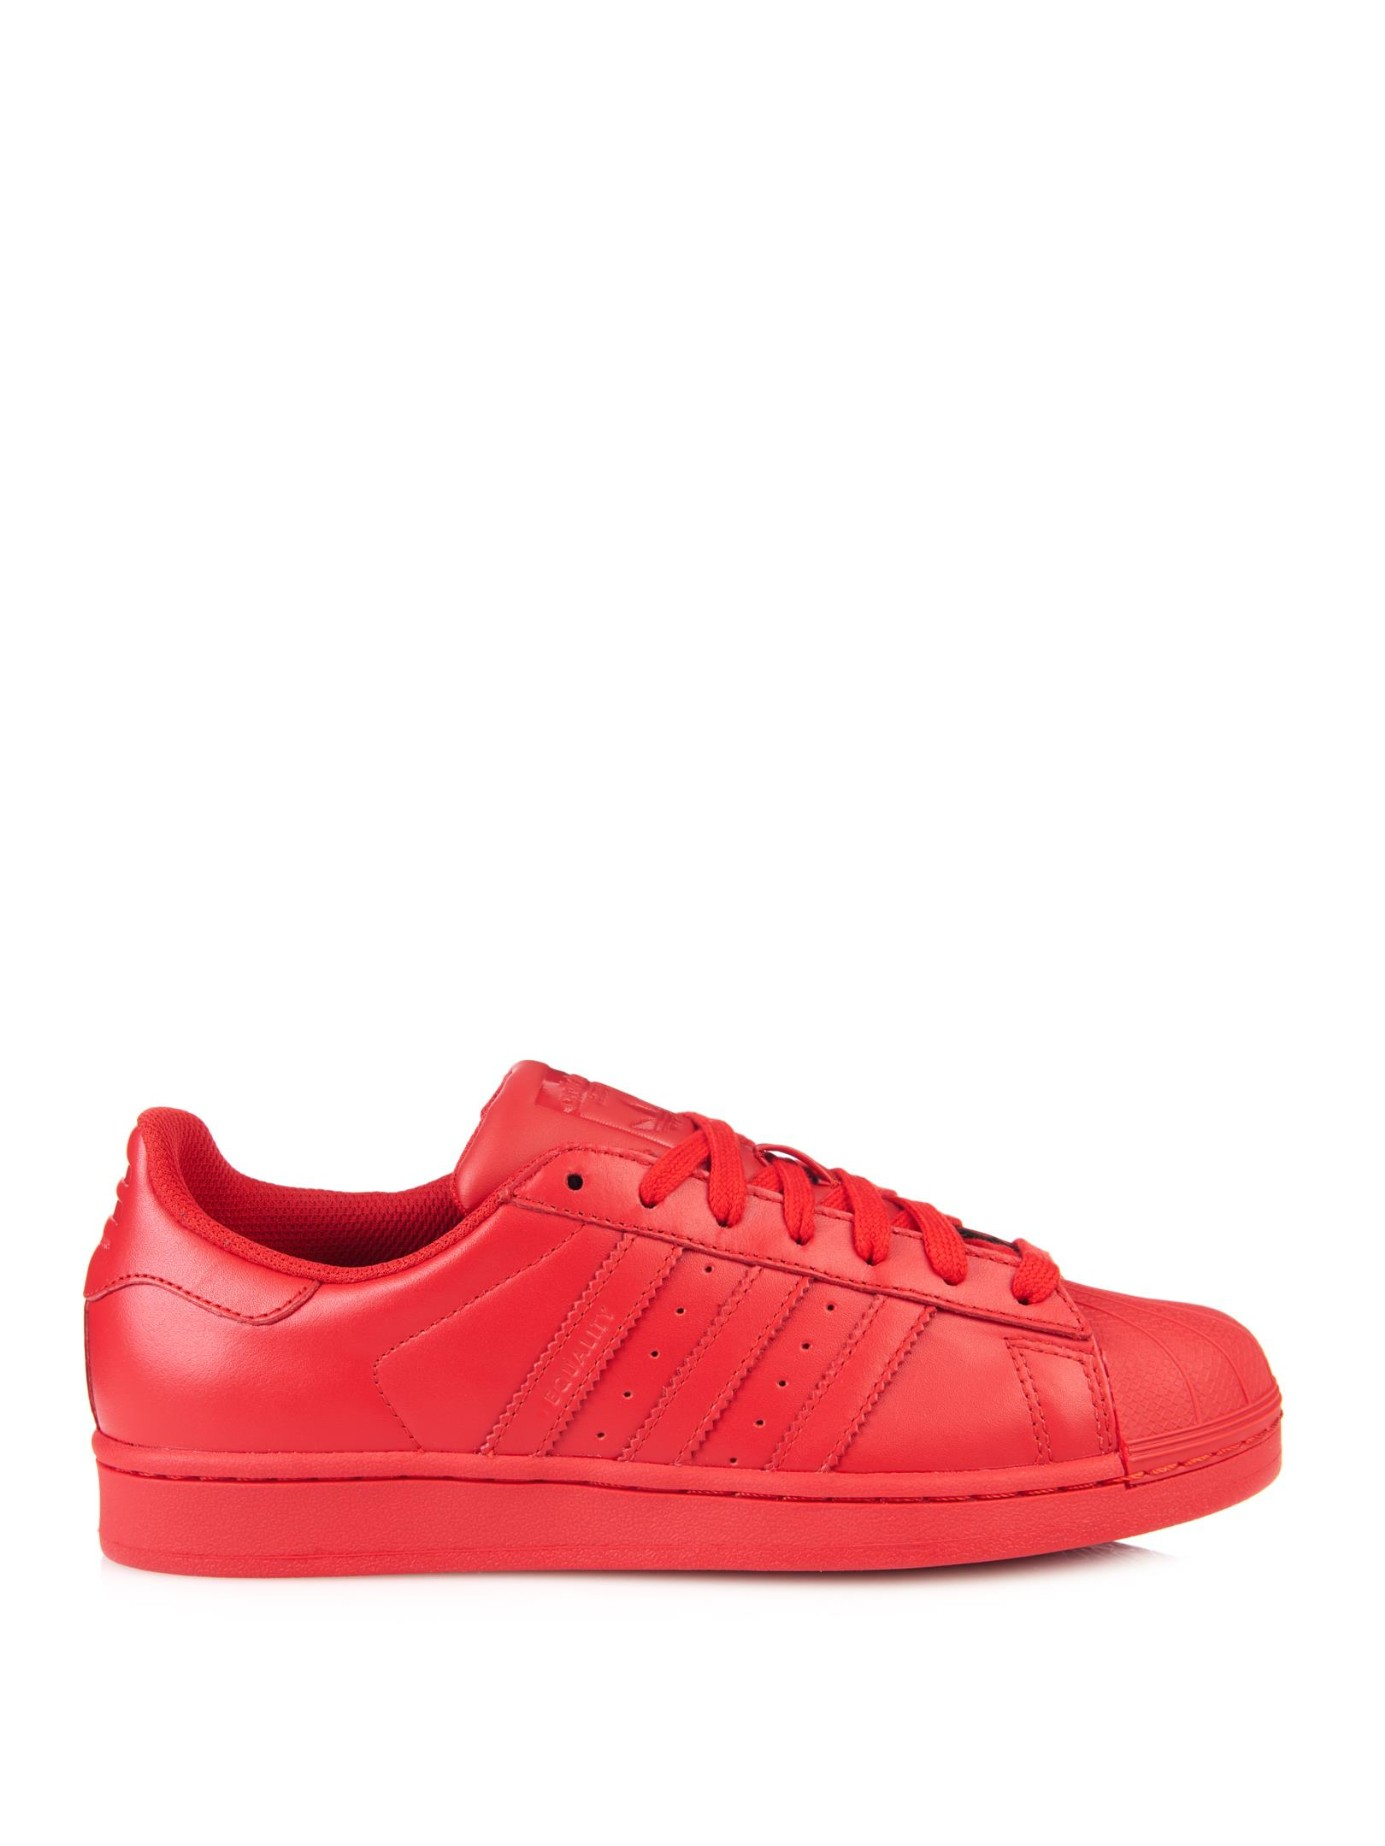 Lyst - adidas Superstar Supercolor Leather Trainers in Red 7a45f3889